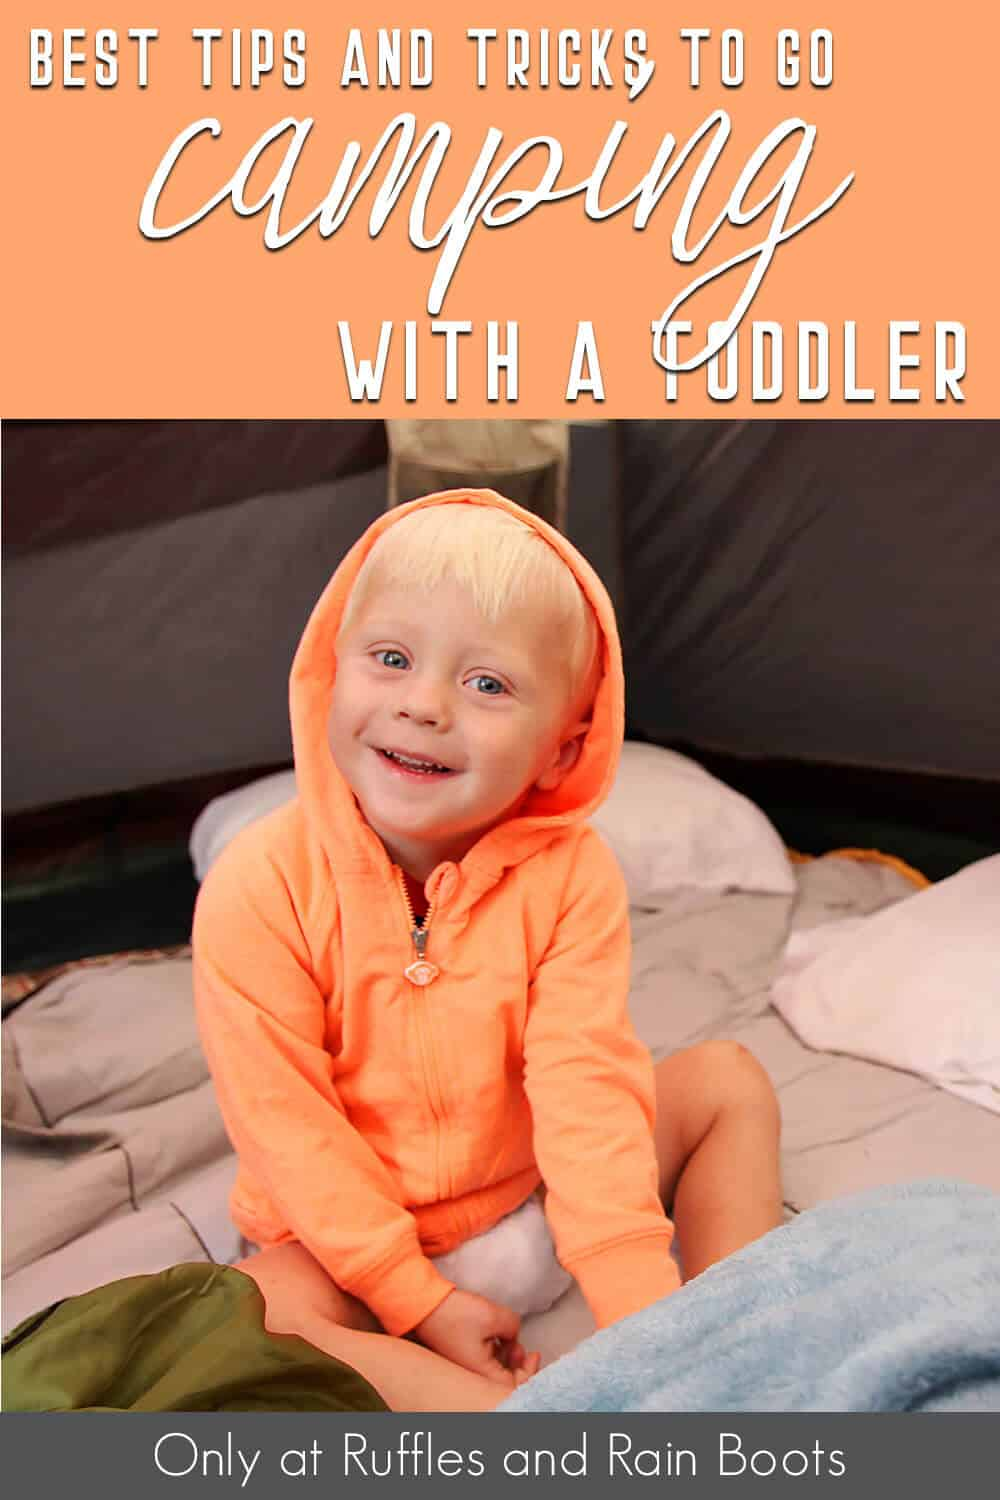 how to take a toddler camping with text which reads best tips to go camping with a toddler